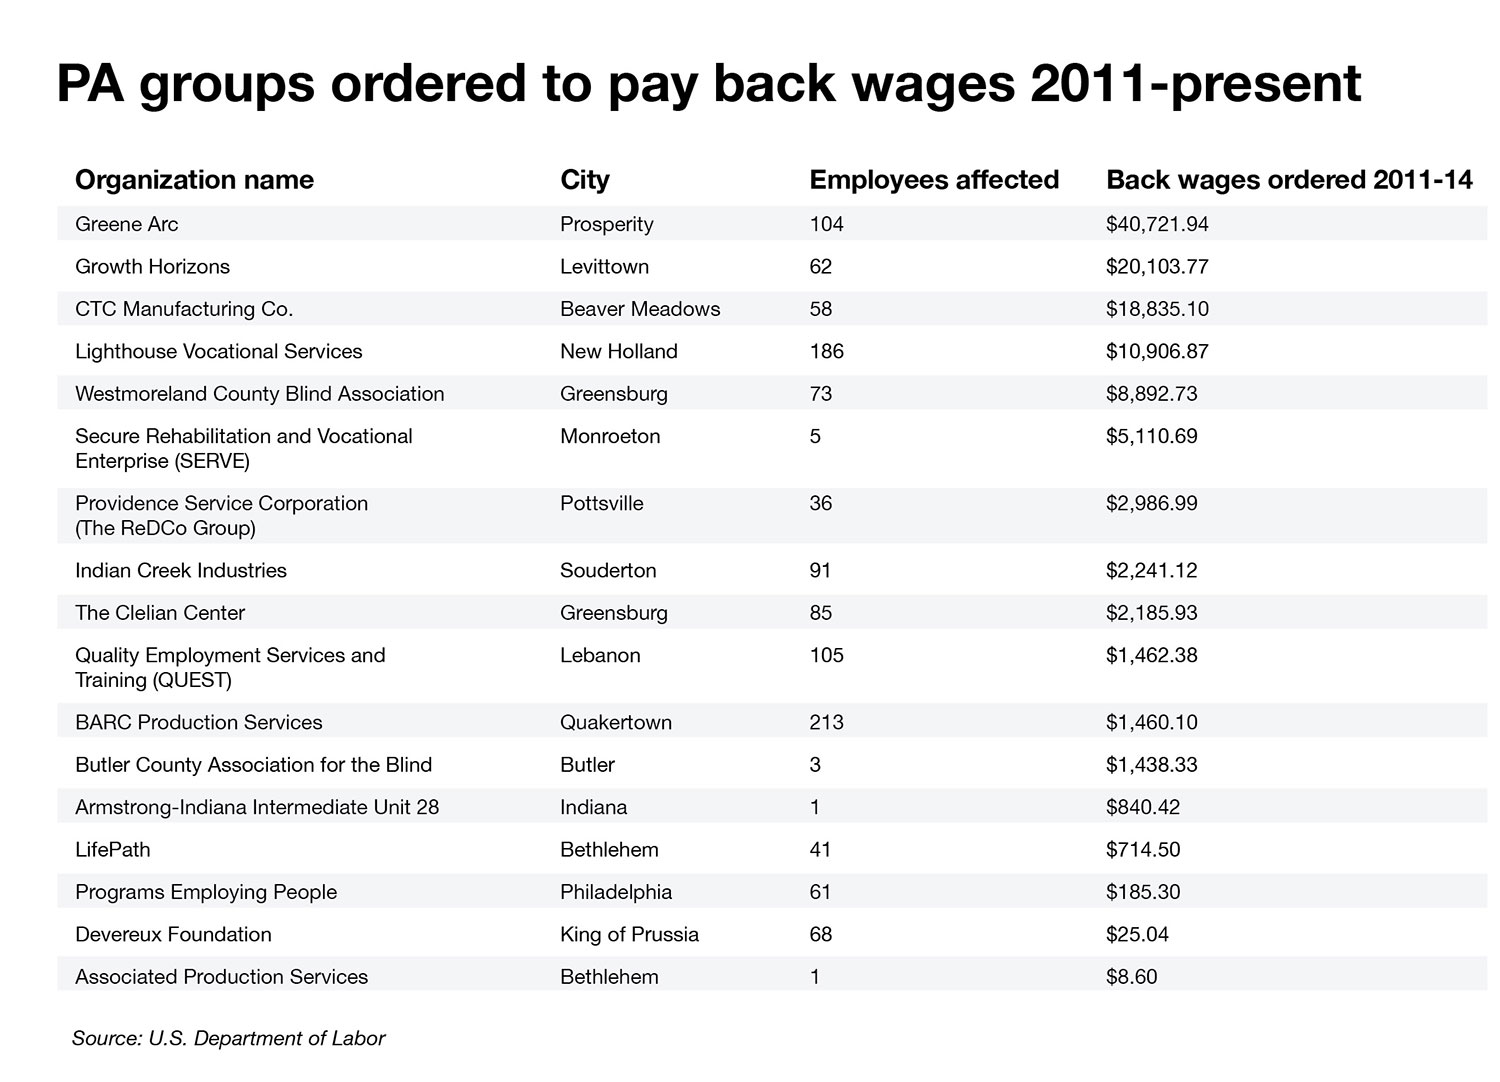 PA groups ordered to pay back wages 2011-present